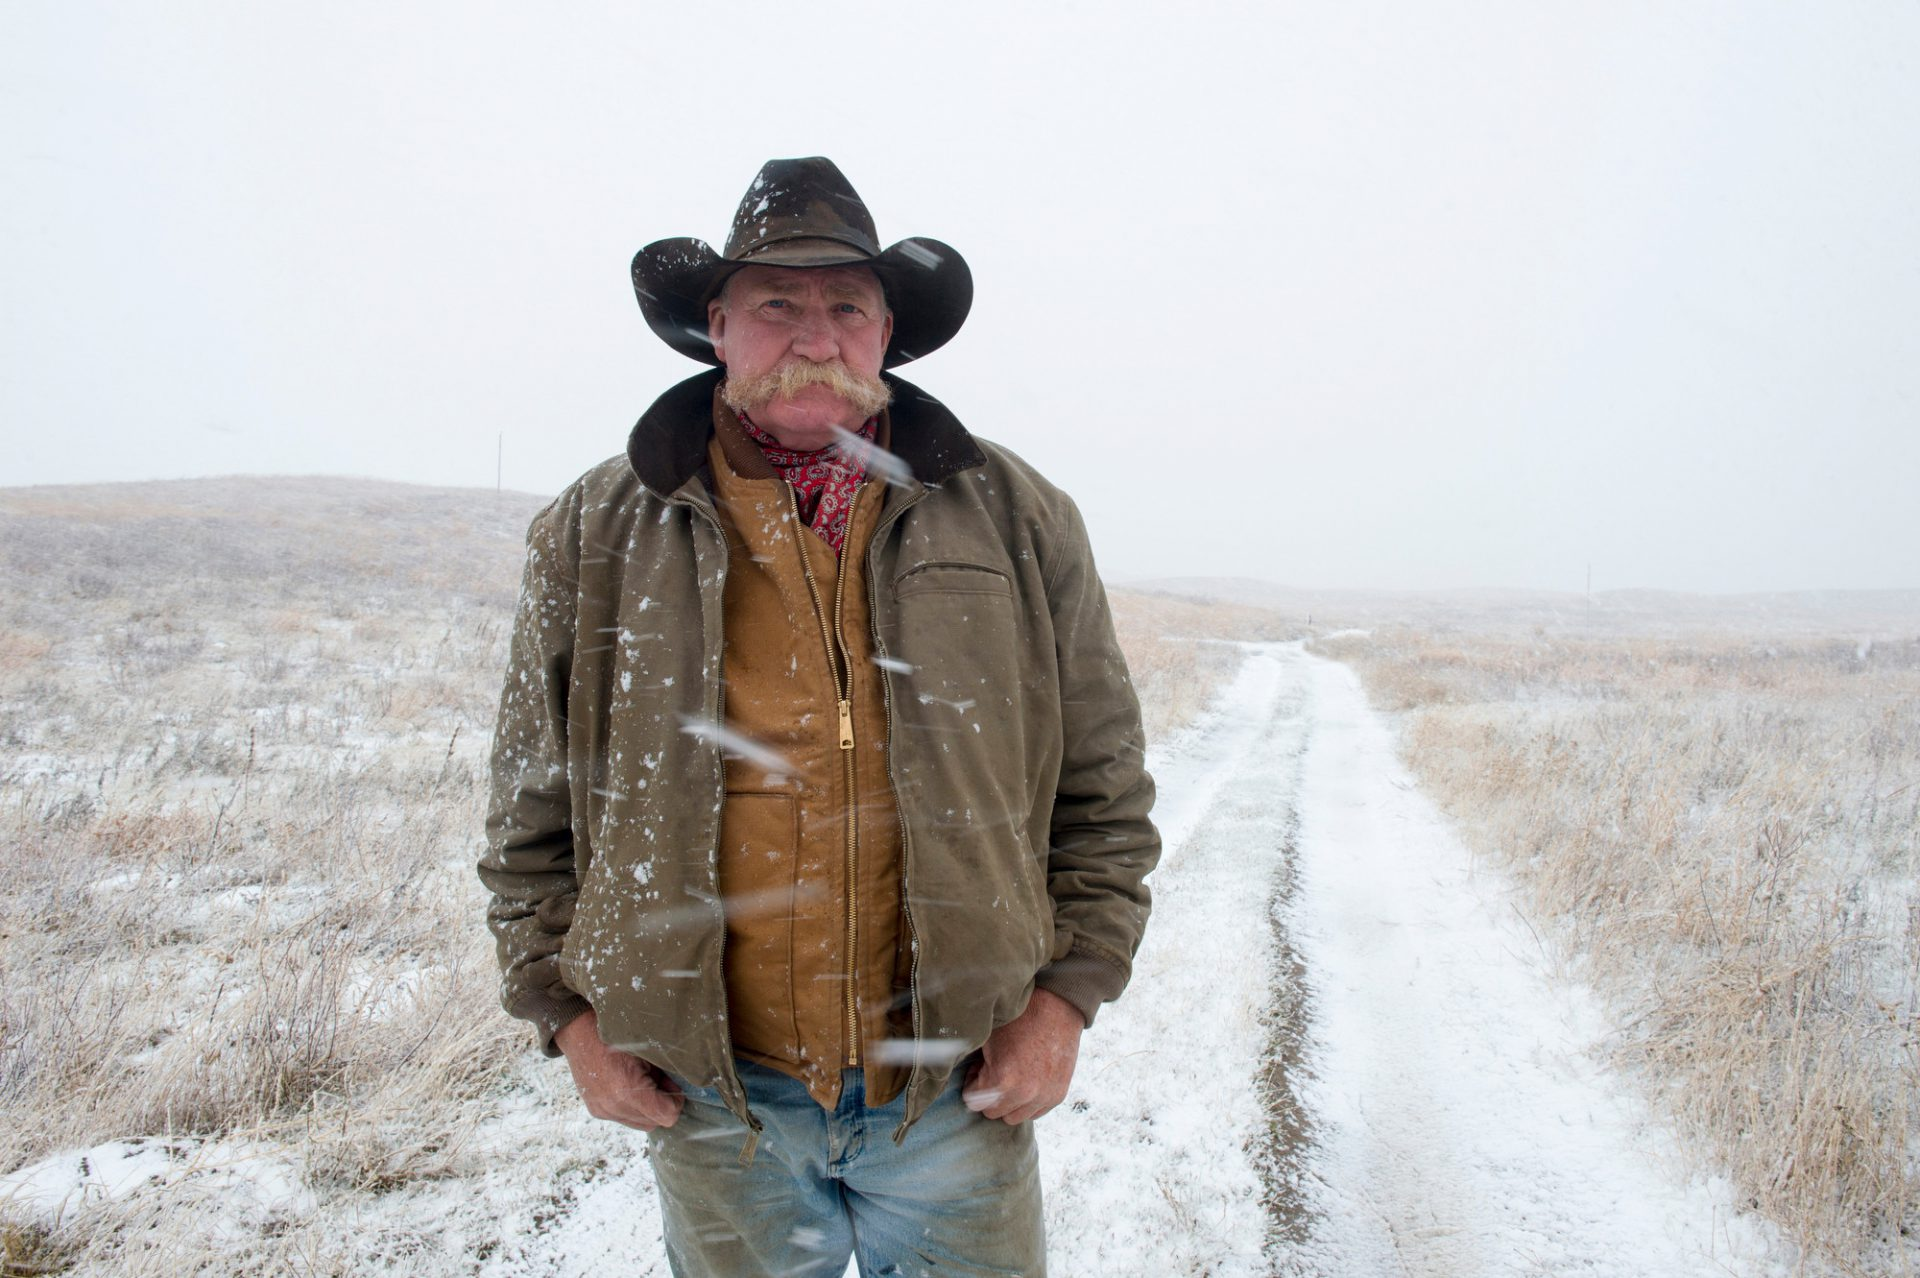 Photo: A man in a cowboy hat stands on a dirt road during a snow storm.